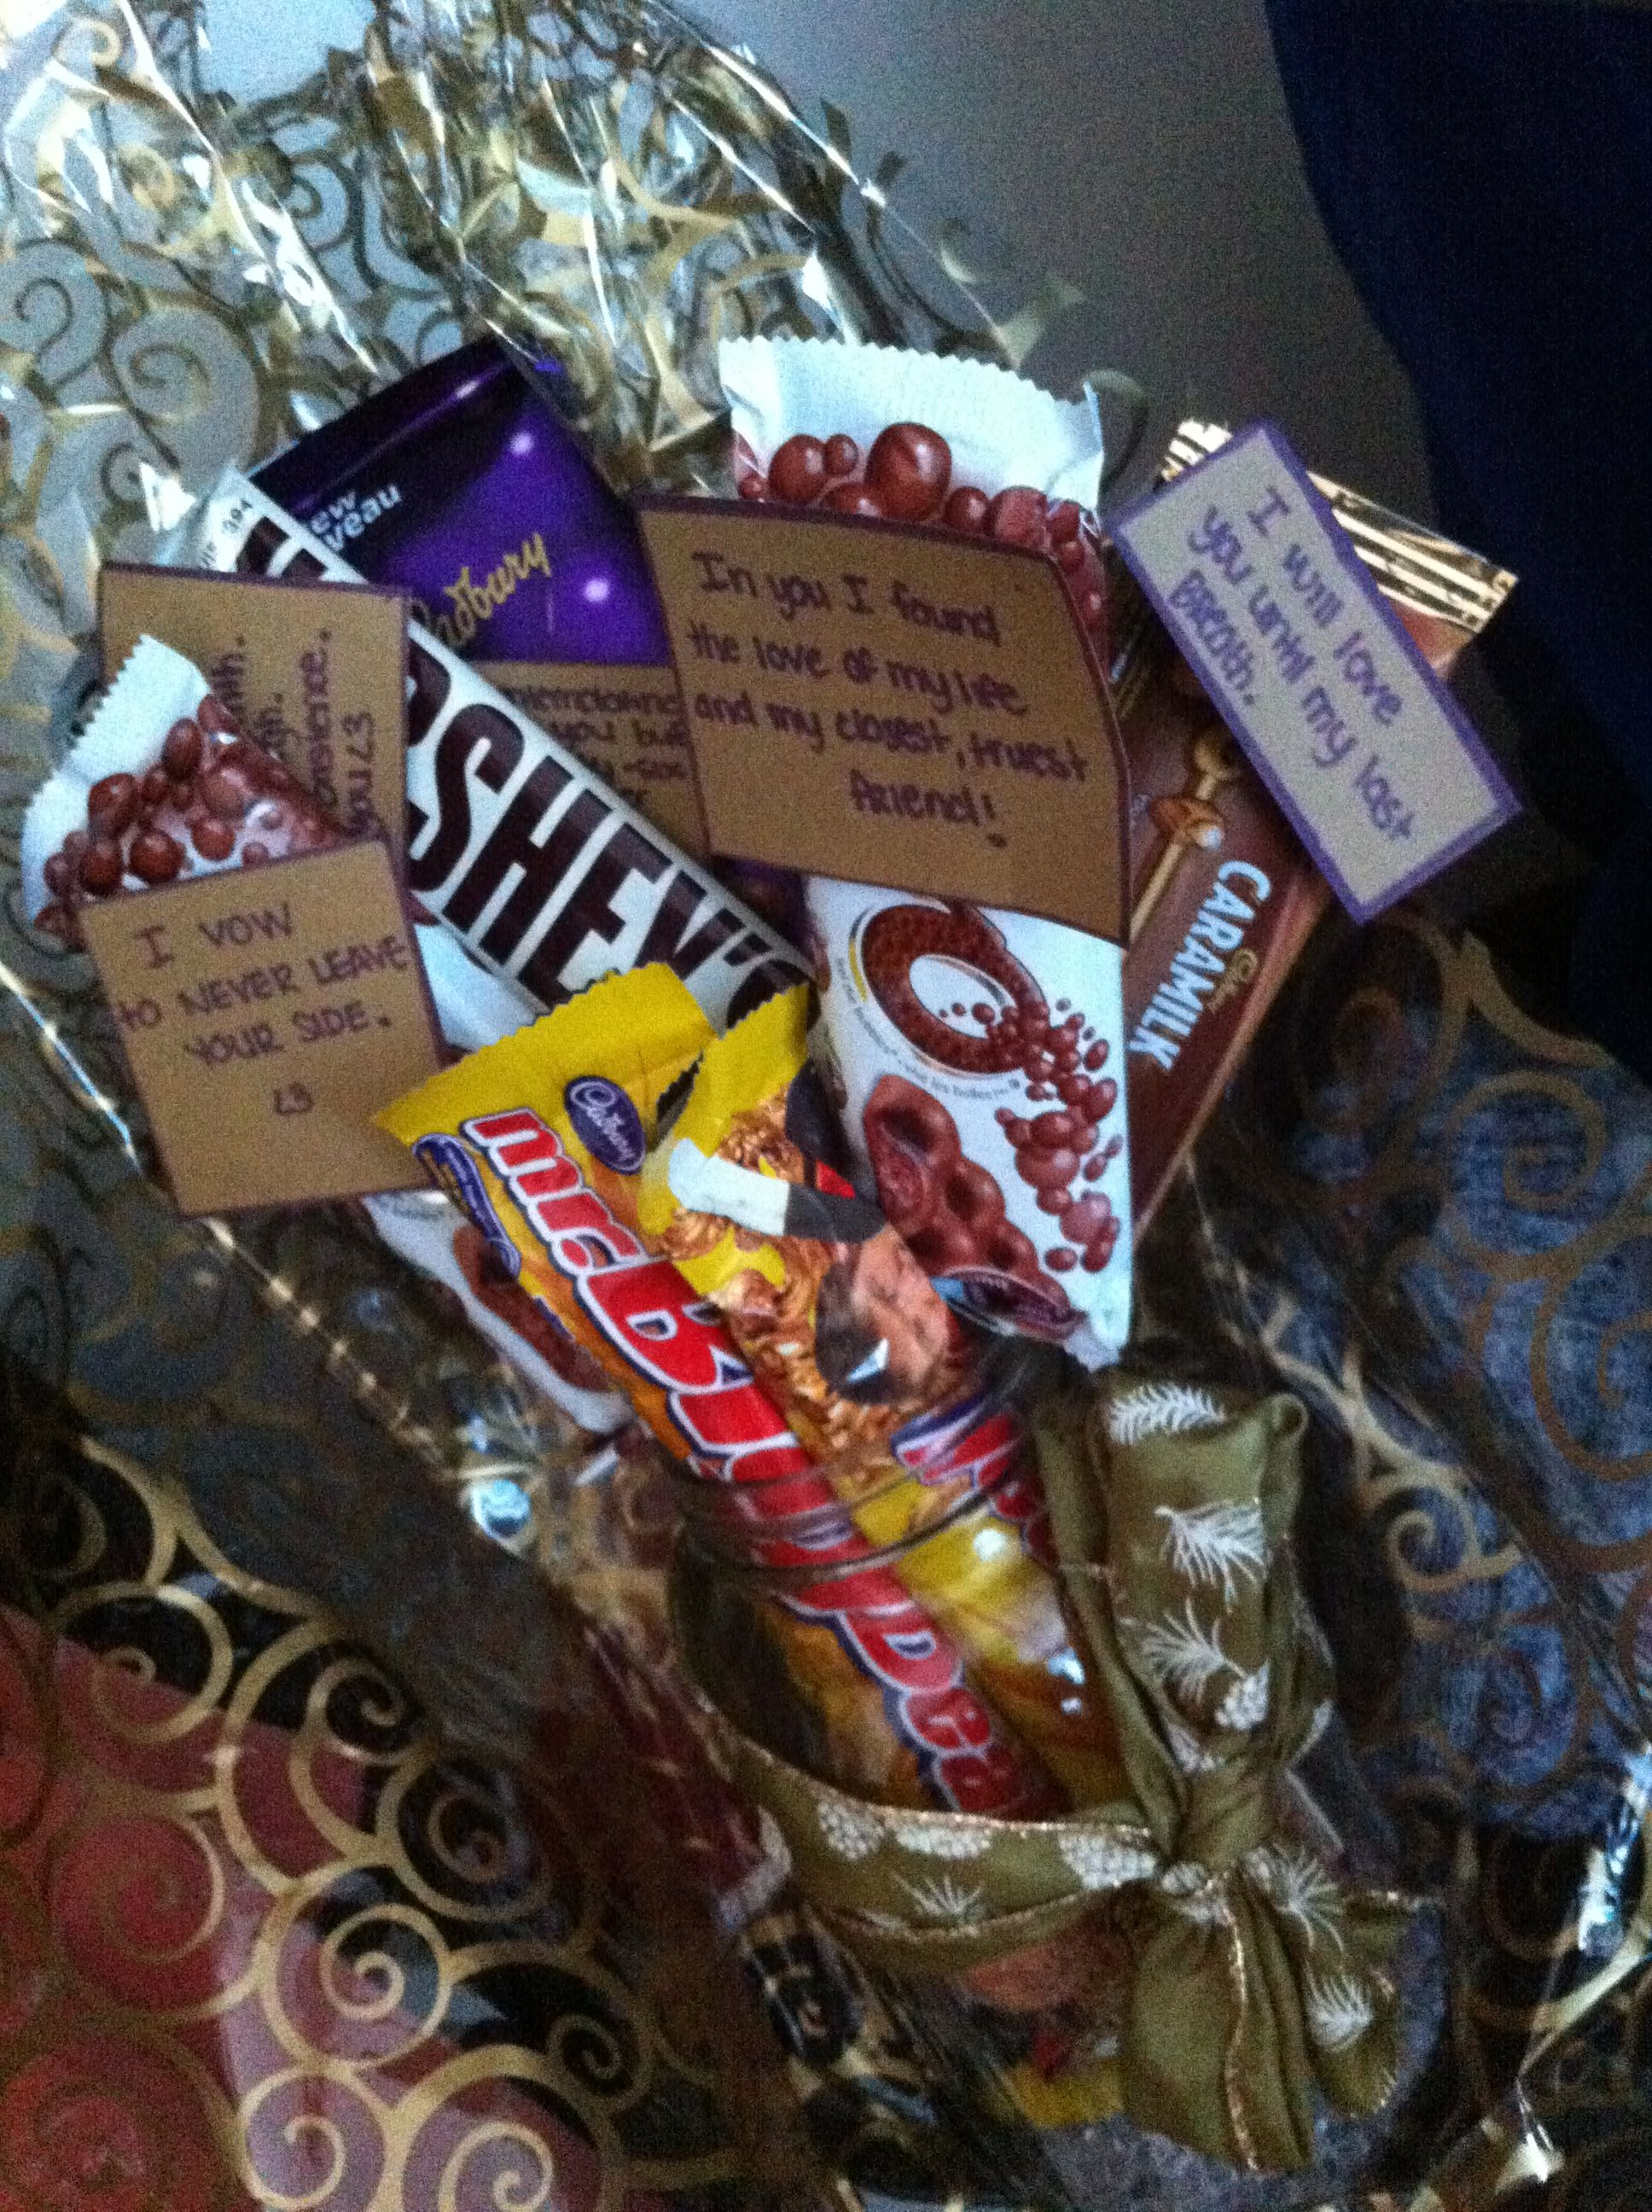 Chocolate Bouquet For Him Small Gift The Hubby Great DIY Idea Ladies